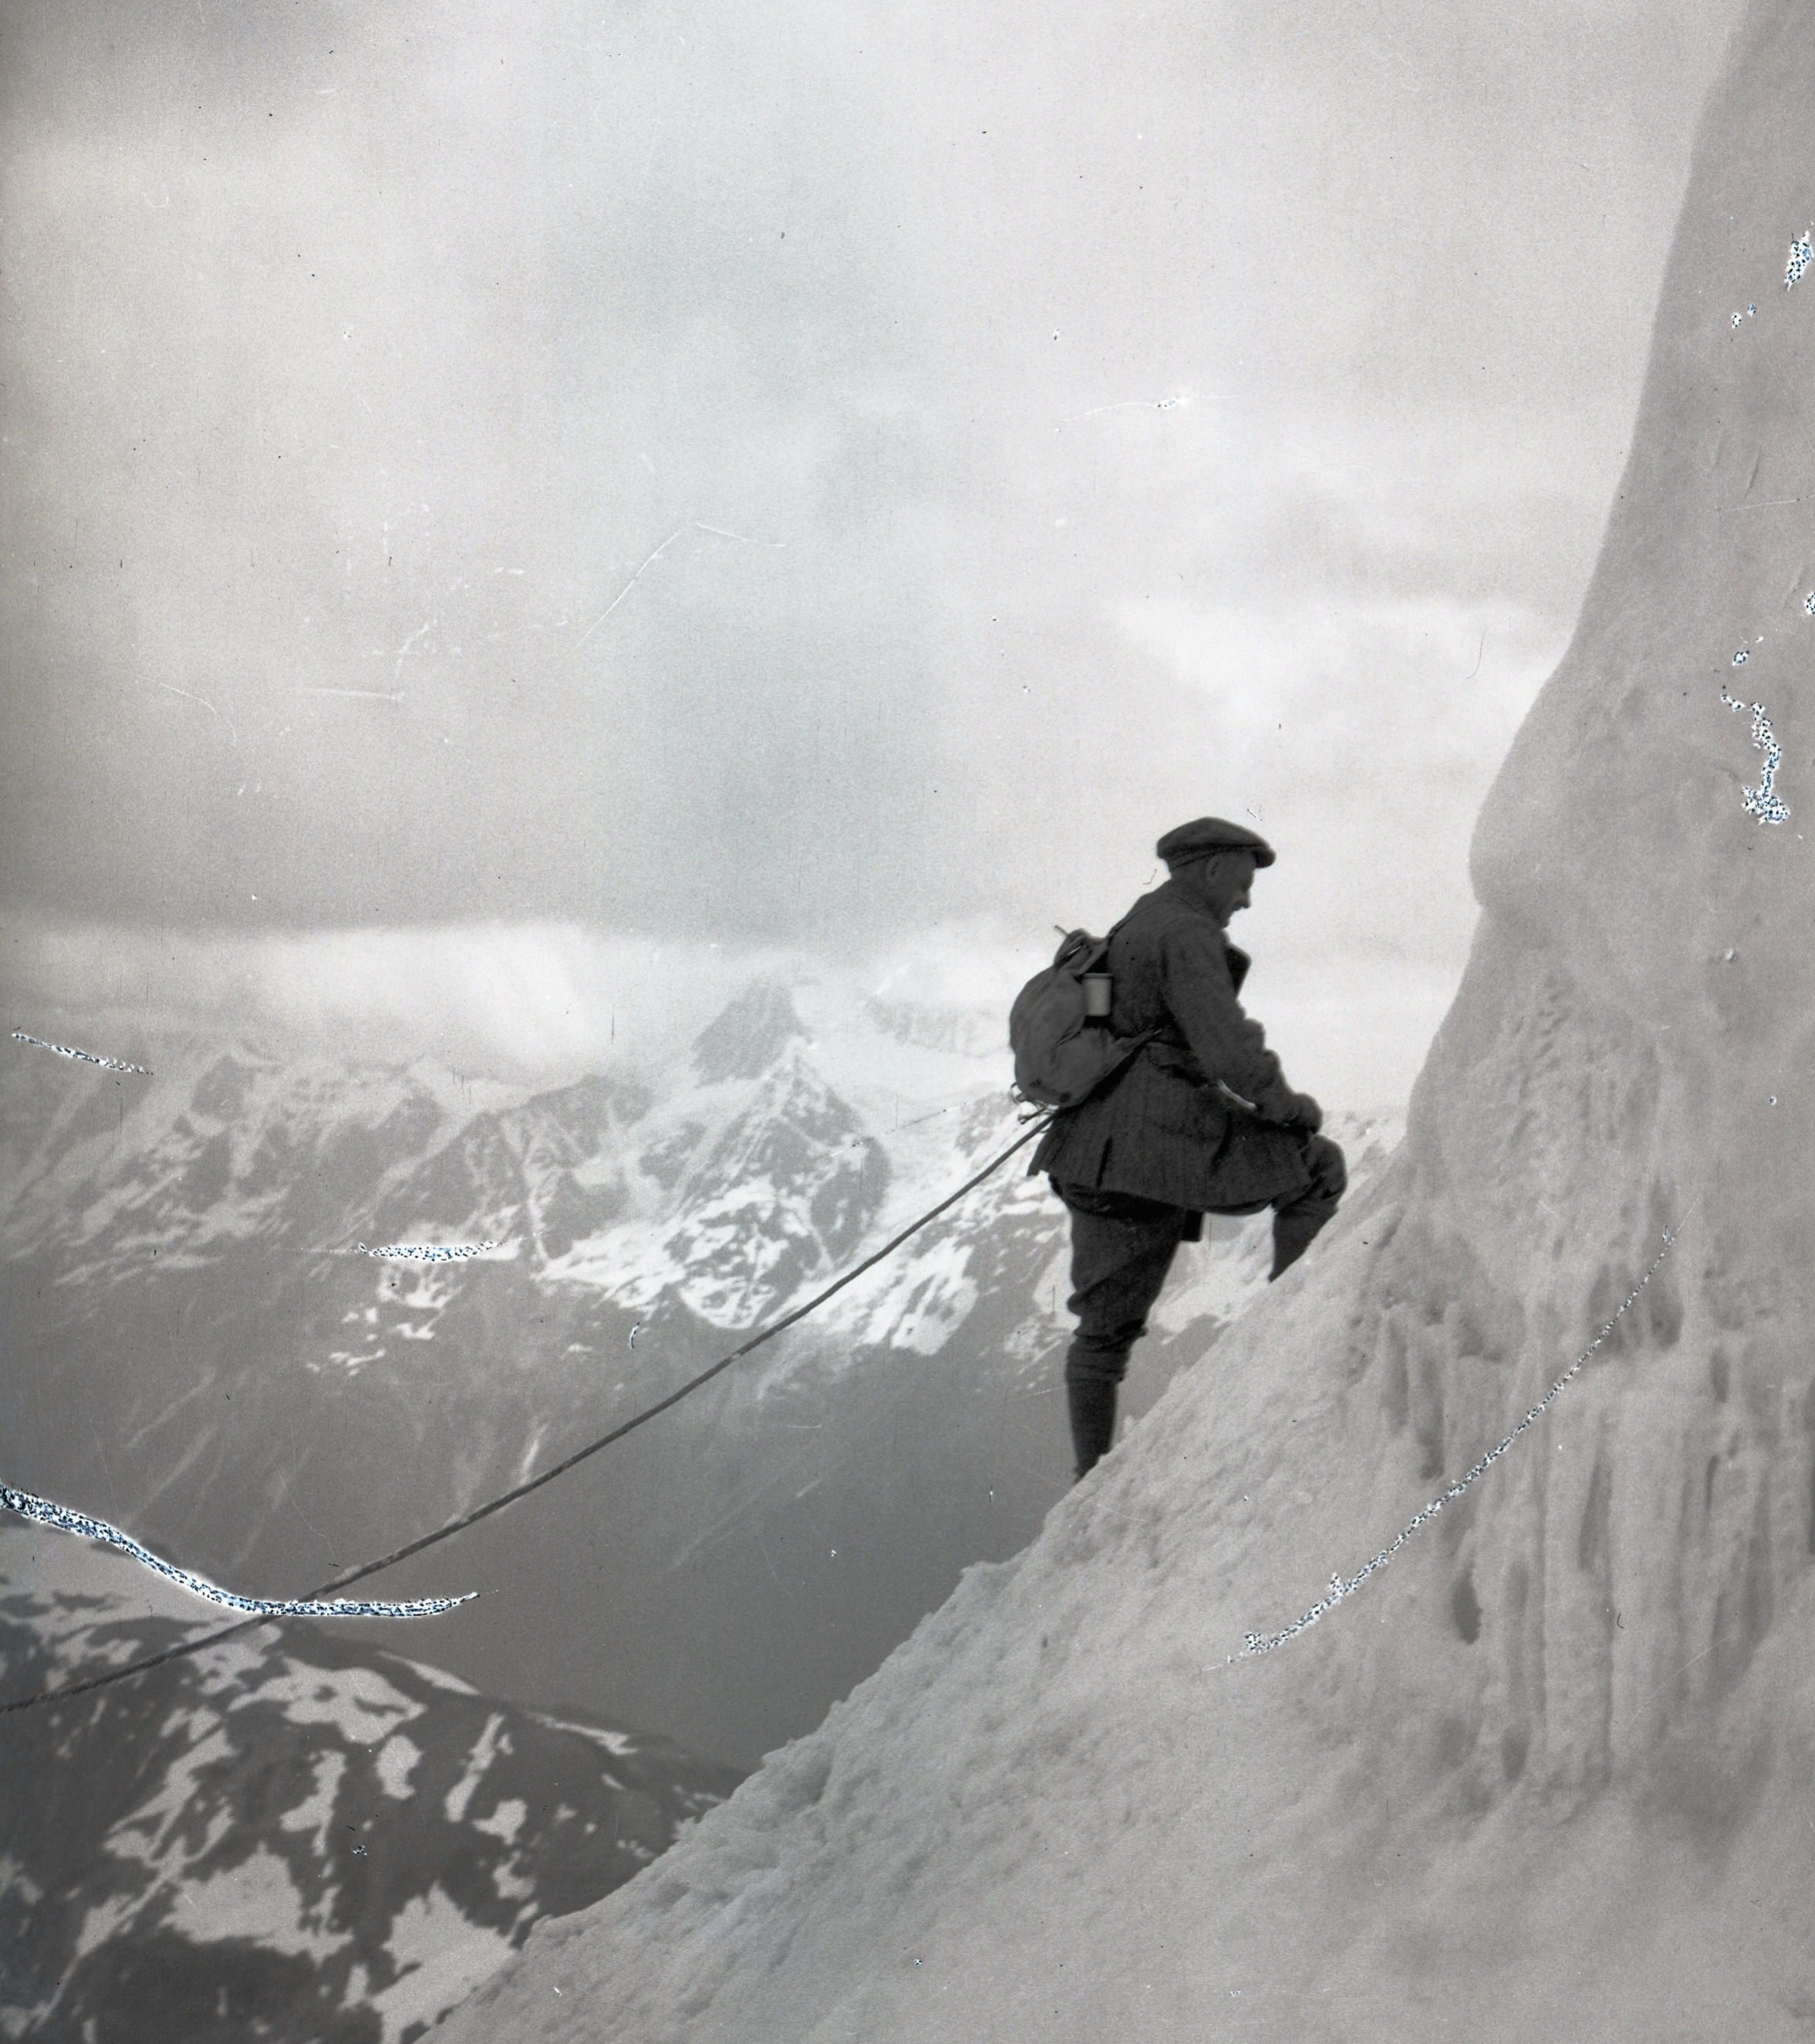 Climbing in the Alps, 1905